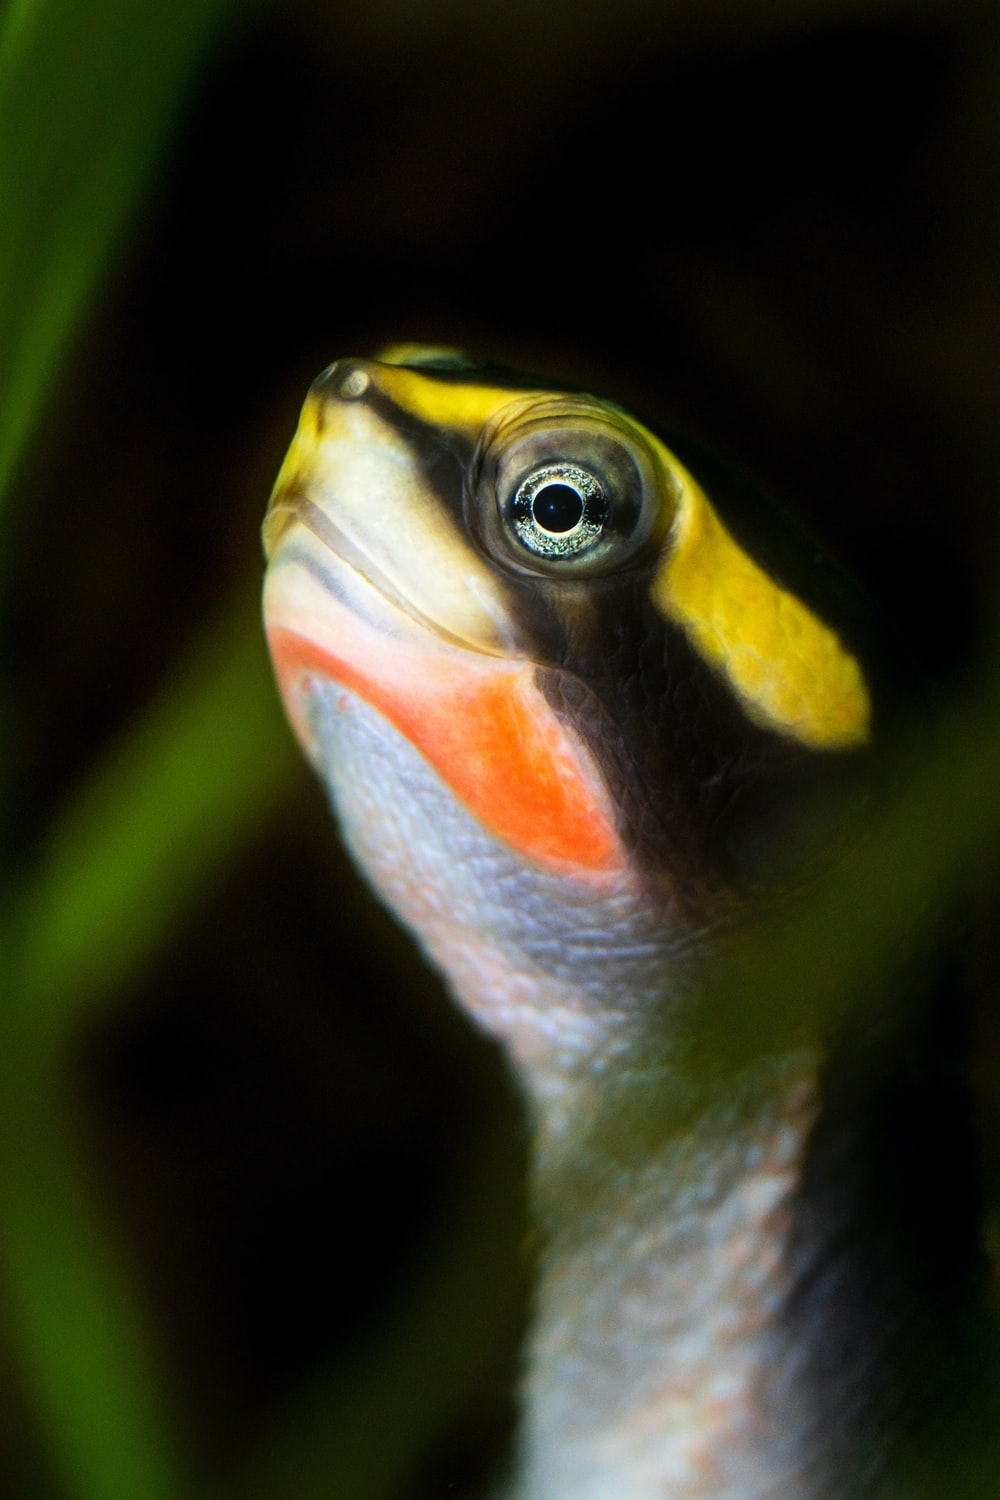 yellow and black fish in close up photography